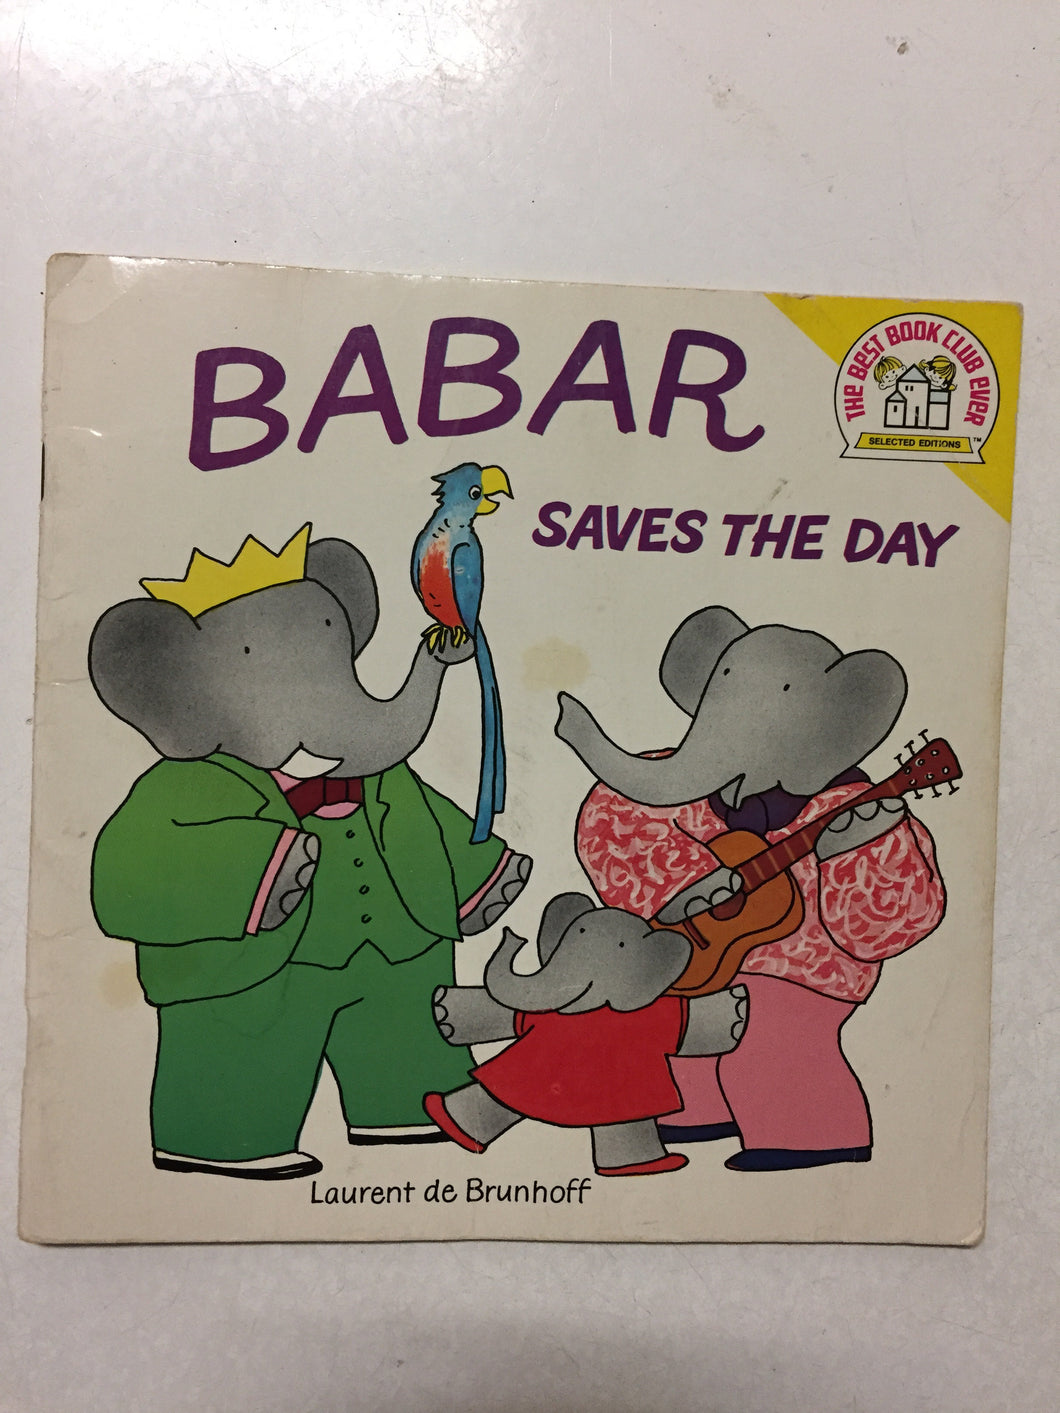 Babar Saves the Day - Slick Cat Books